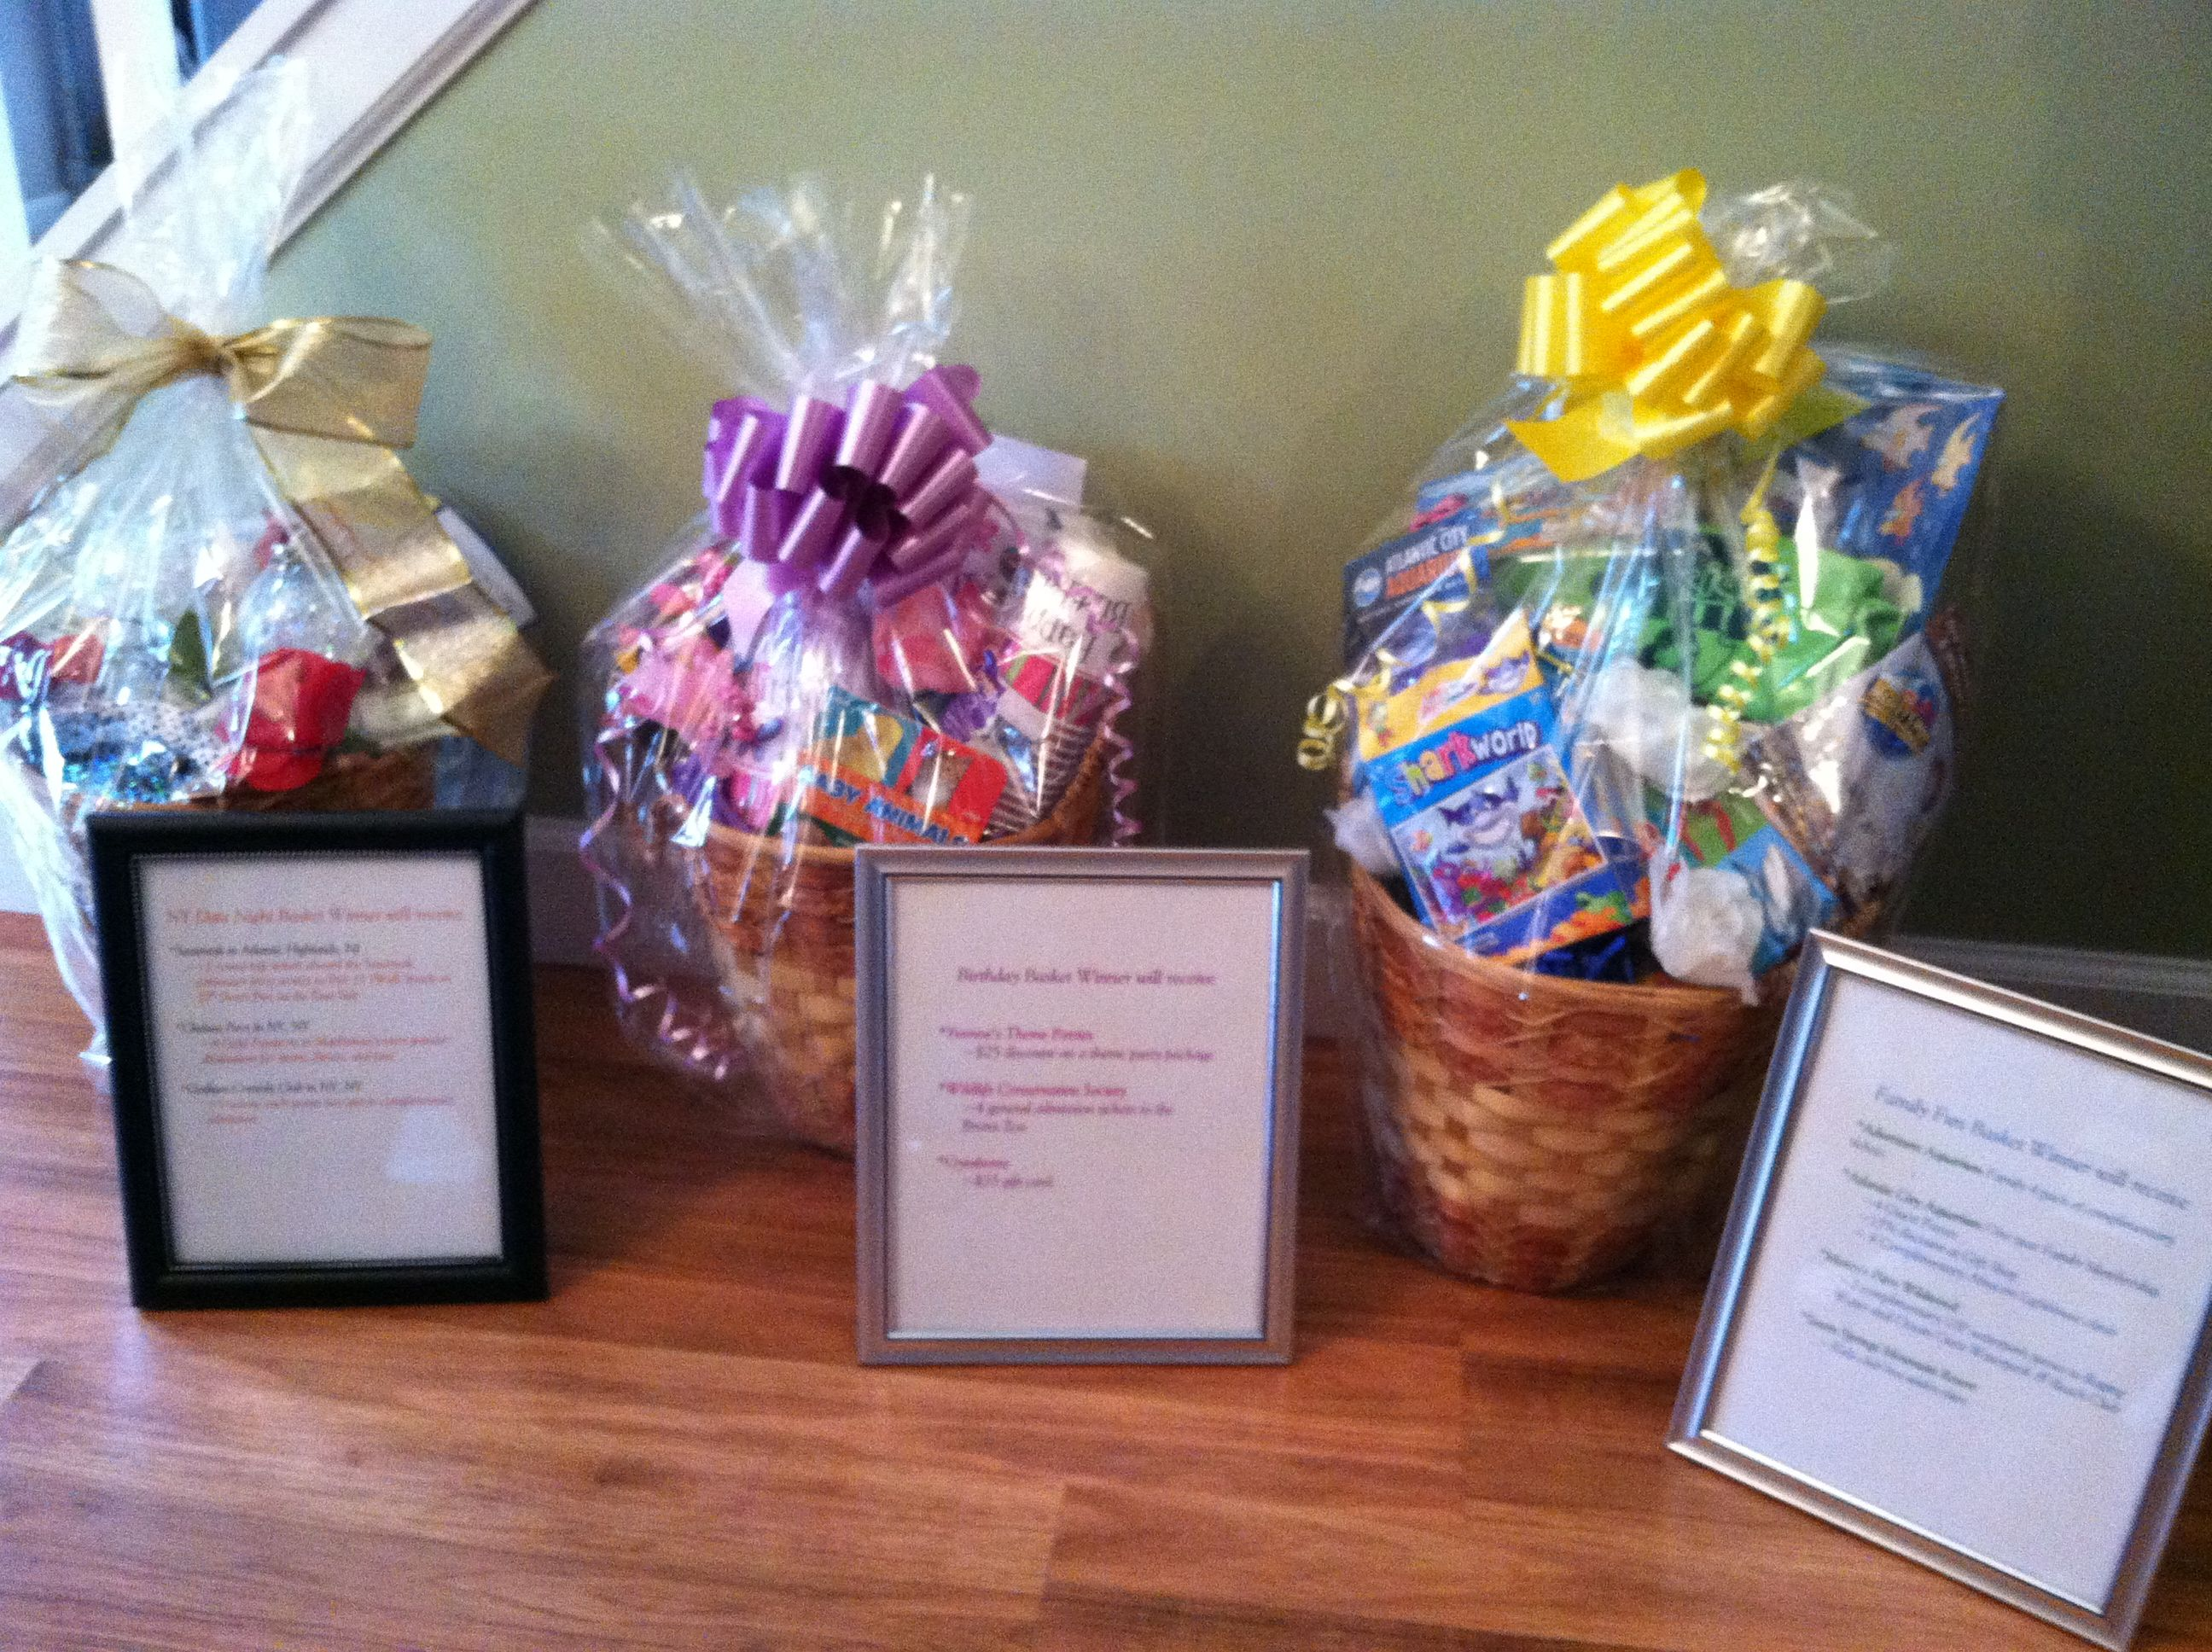 Gift baskets for our schools fundraiser using dollar store items gift baskets for our schools fundraiser using dollar store items baskets include gift certificates and negle Images